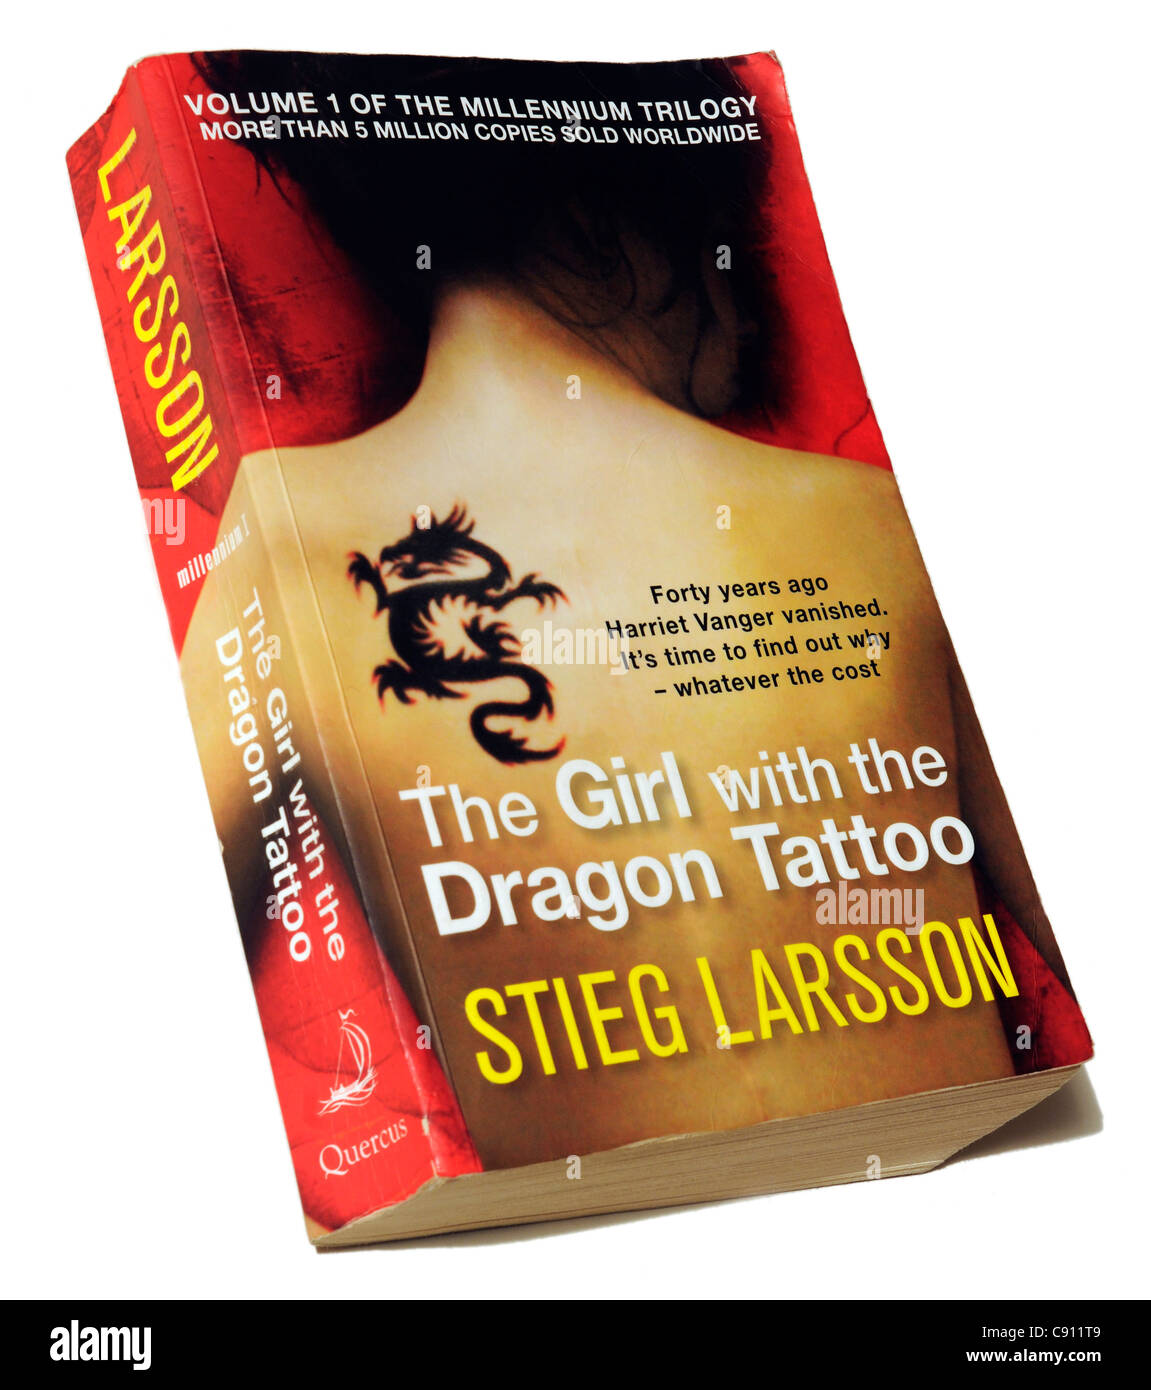 The Girl with the Dragon Tattoo by Steig Larsson - Stock Image